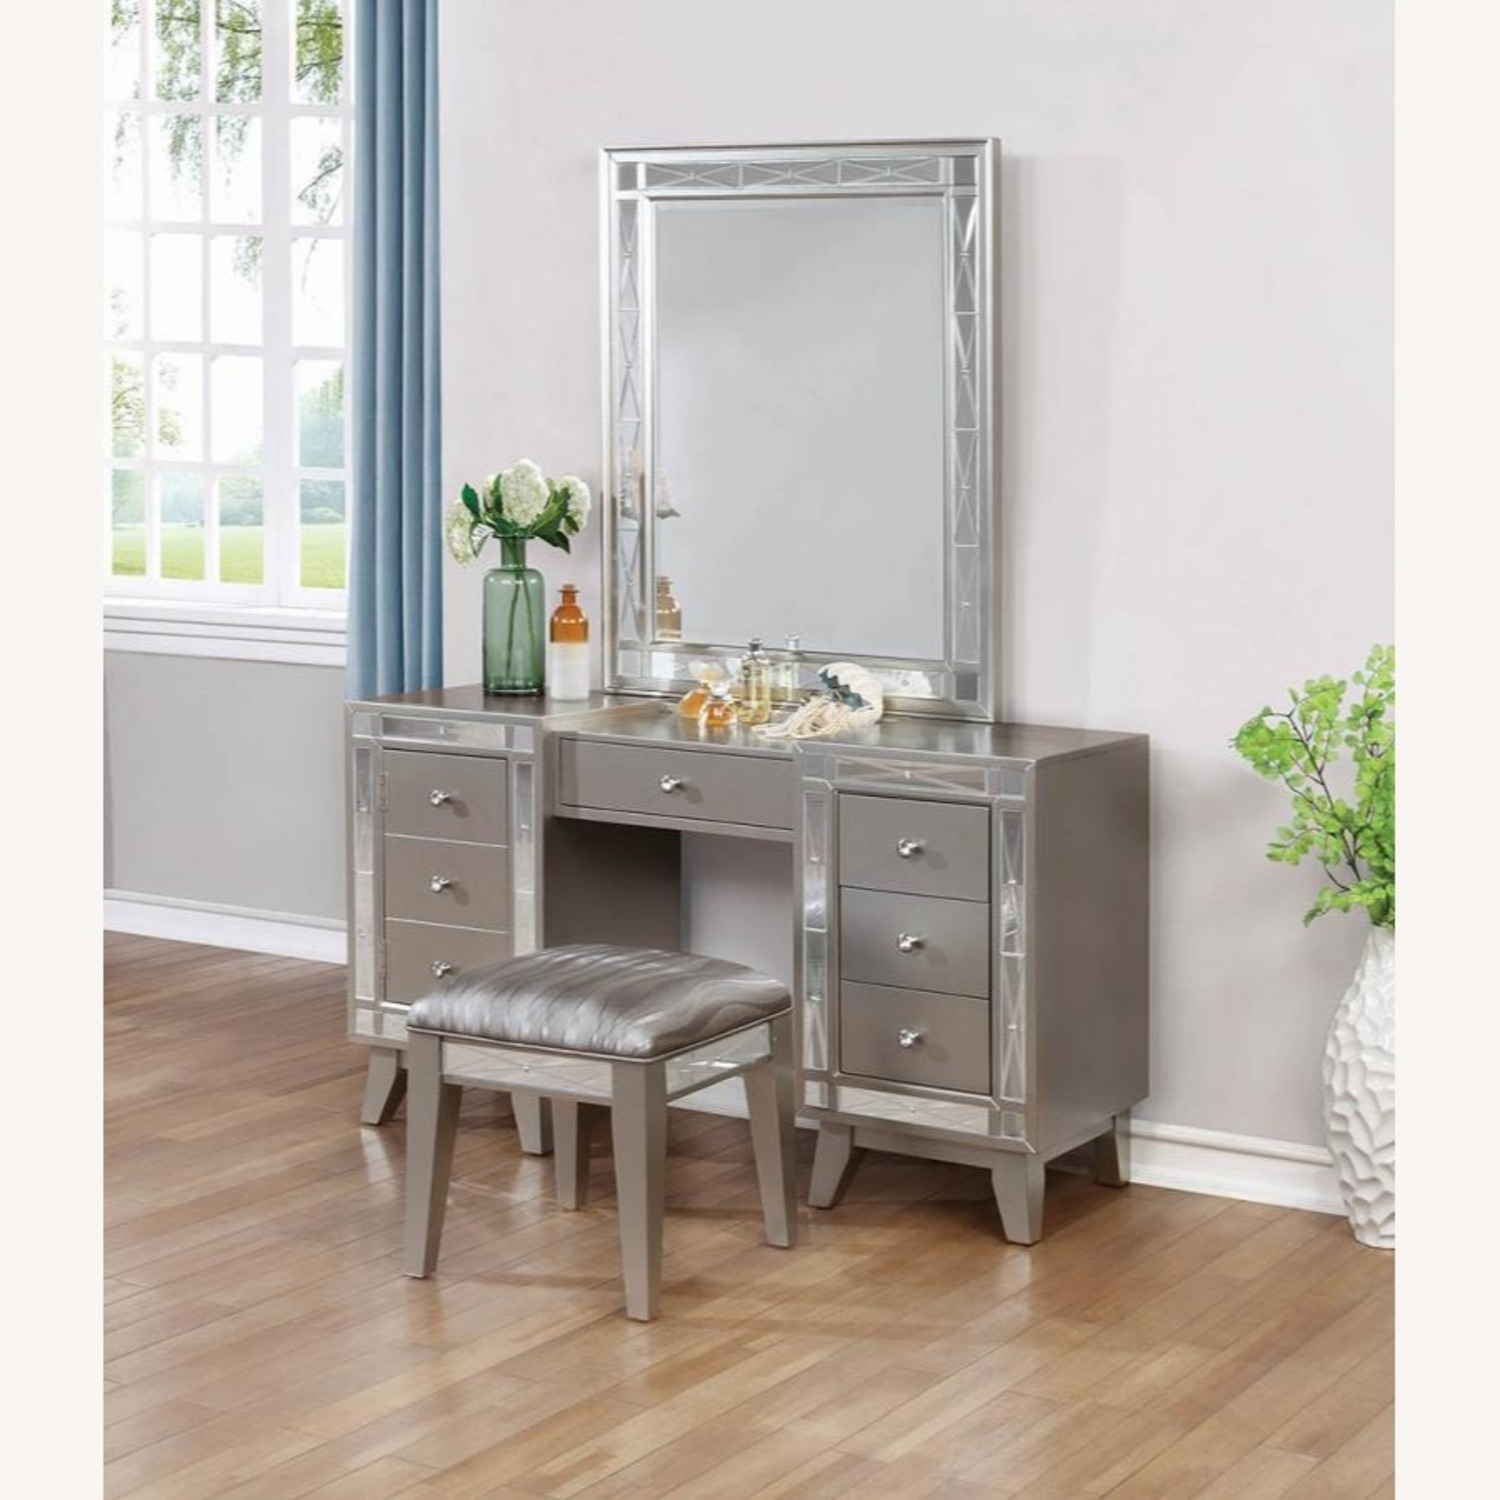 Vanity Desk & Stool In Metallic Mercury Finish - image-4